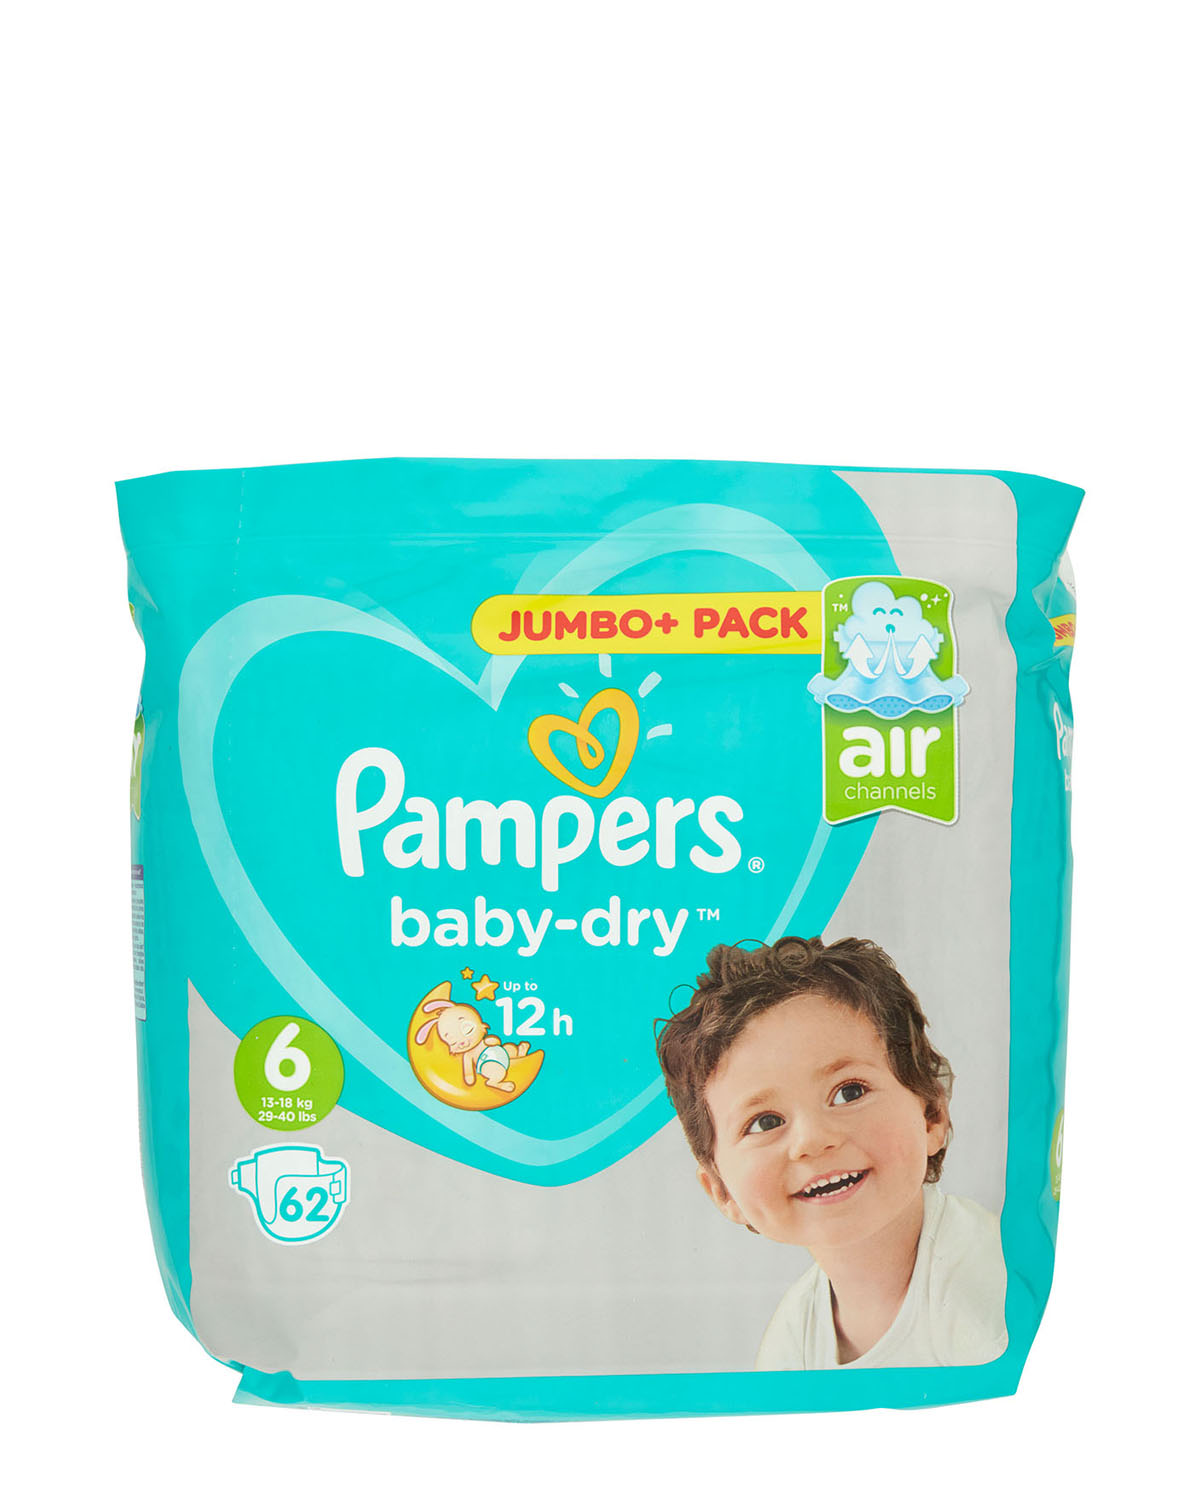 Pampers Baby Dry Size 6 Jumbo Plus - 62 Nappies